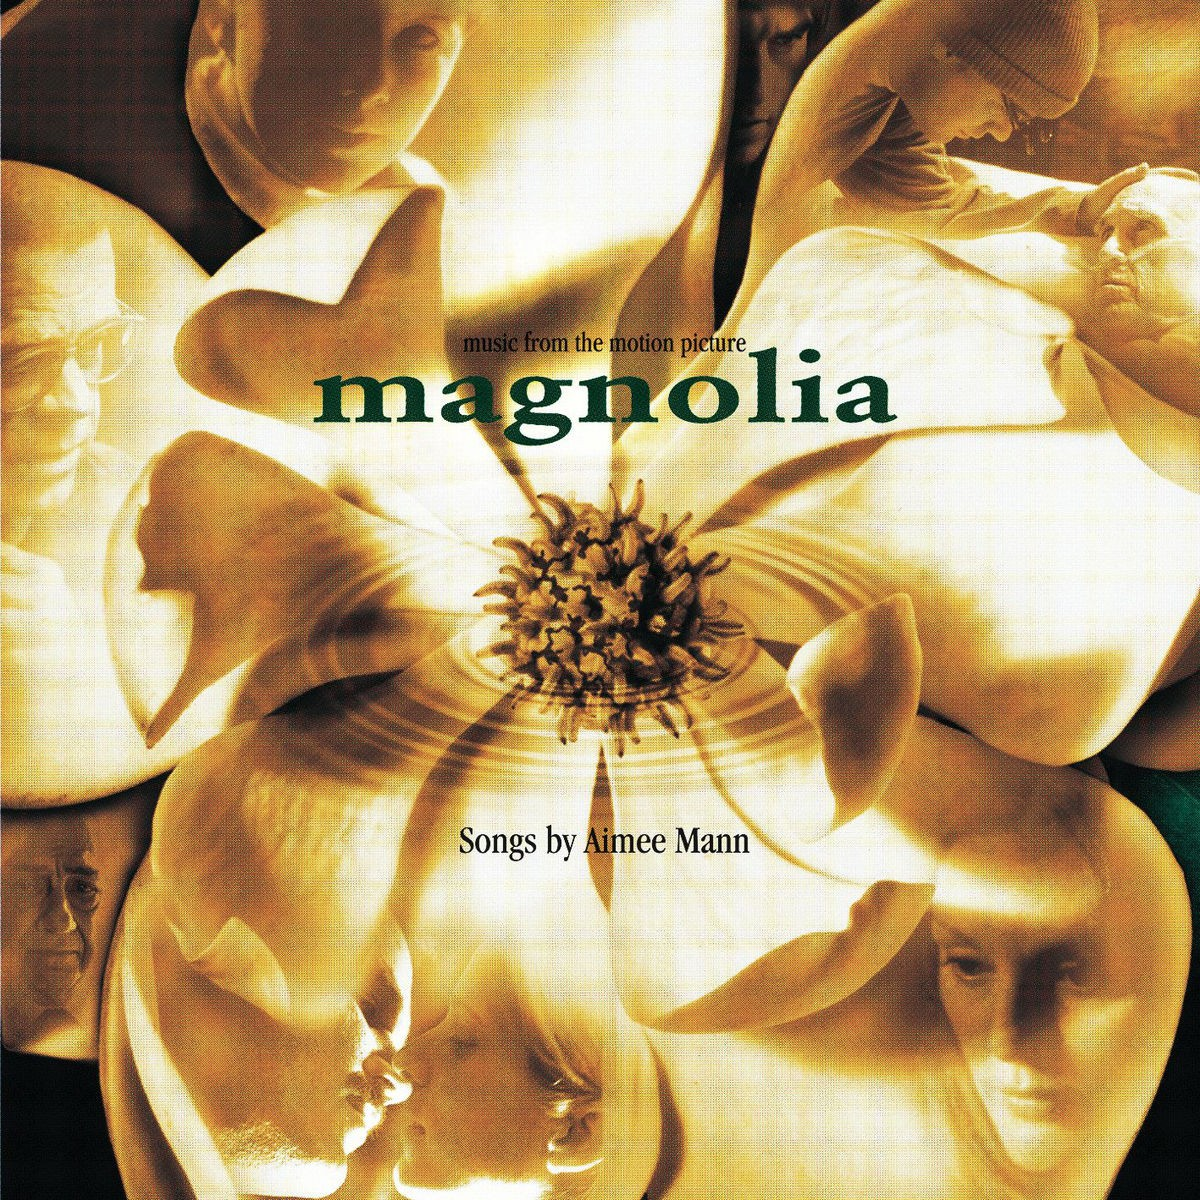 Aimee Mann - Magnolia (Music from the Motion Picture) CD - 9362475832